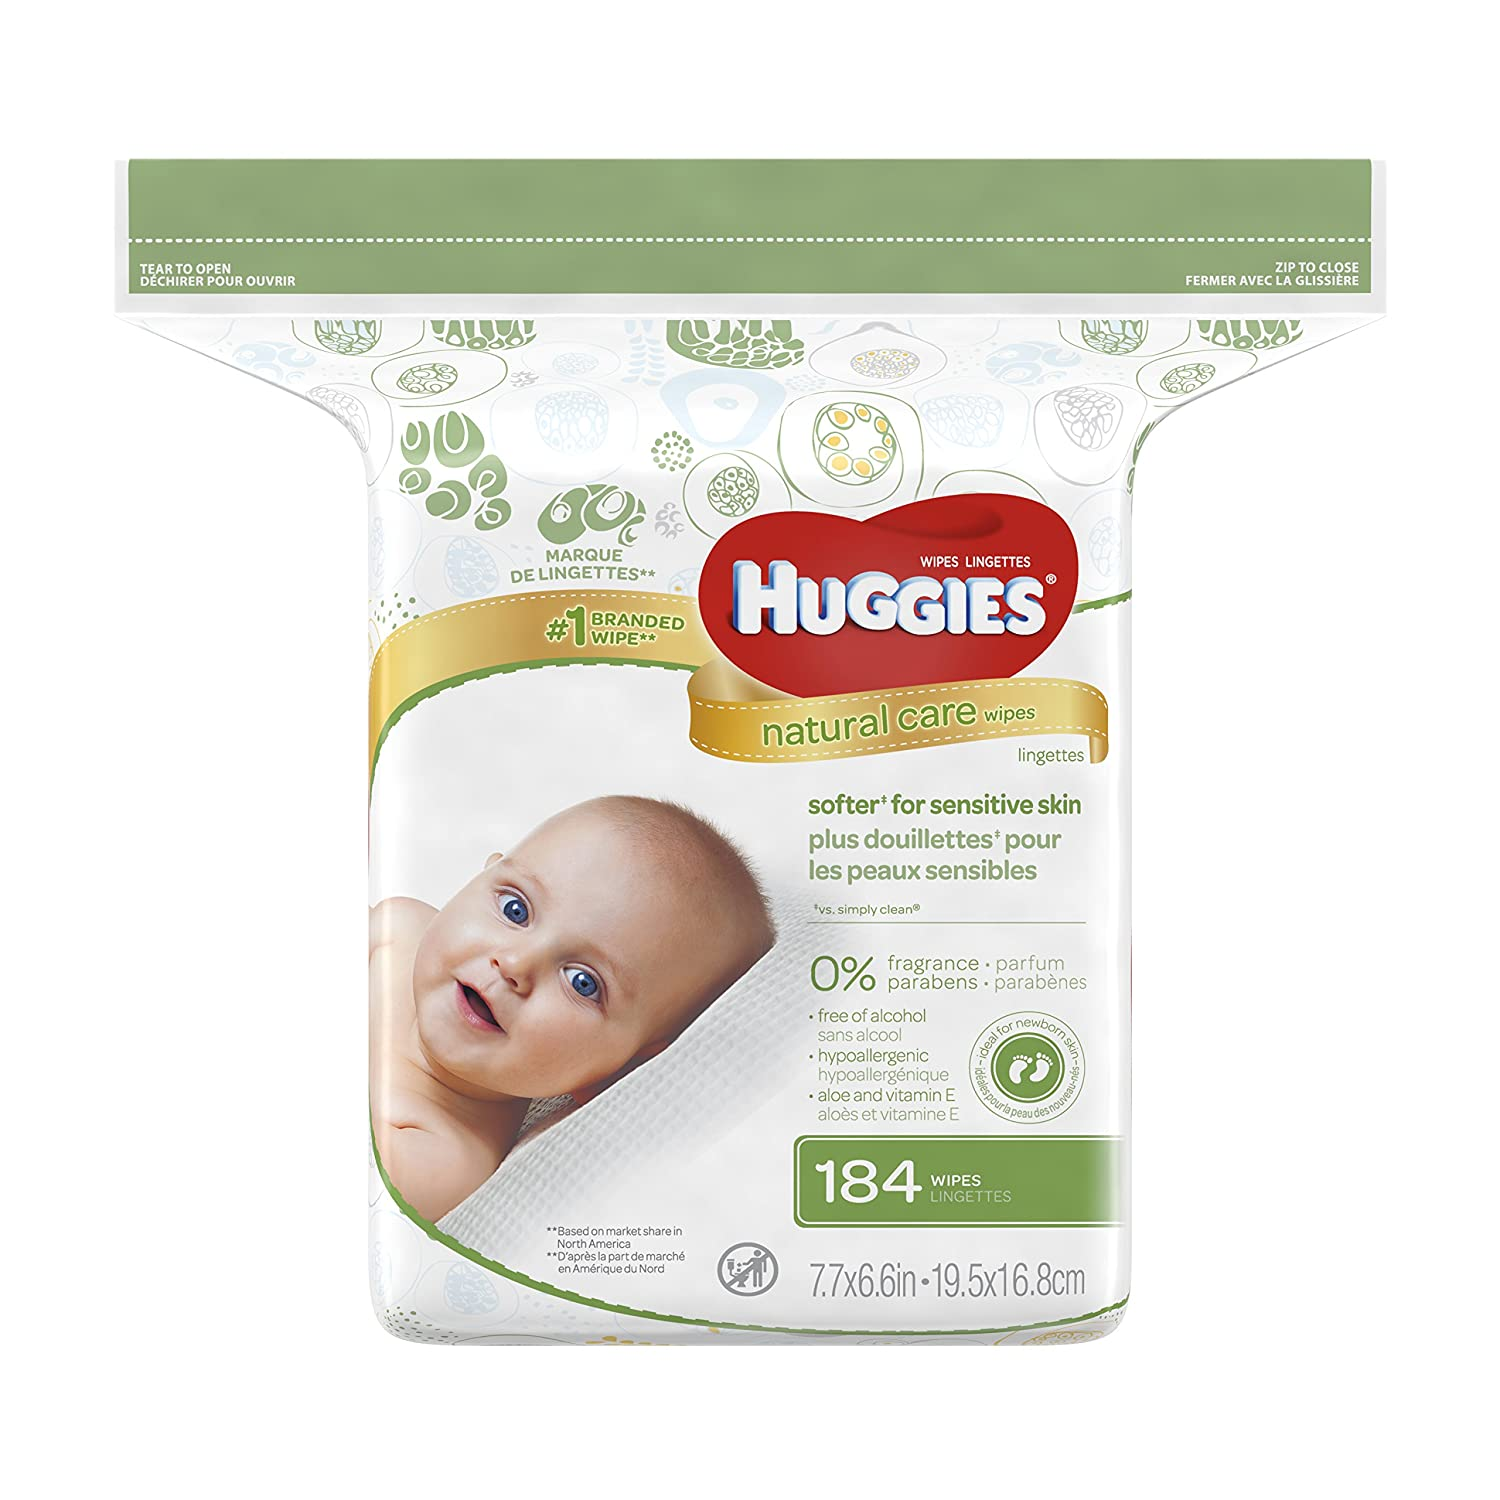 Huggies Natural Care Fragrance Free Baby Wipes 552 Total Wipes 184 Count by Huggies